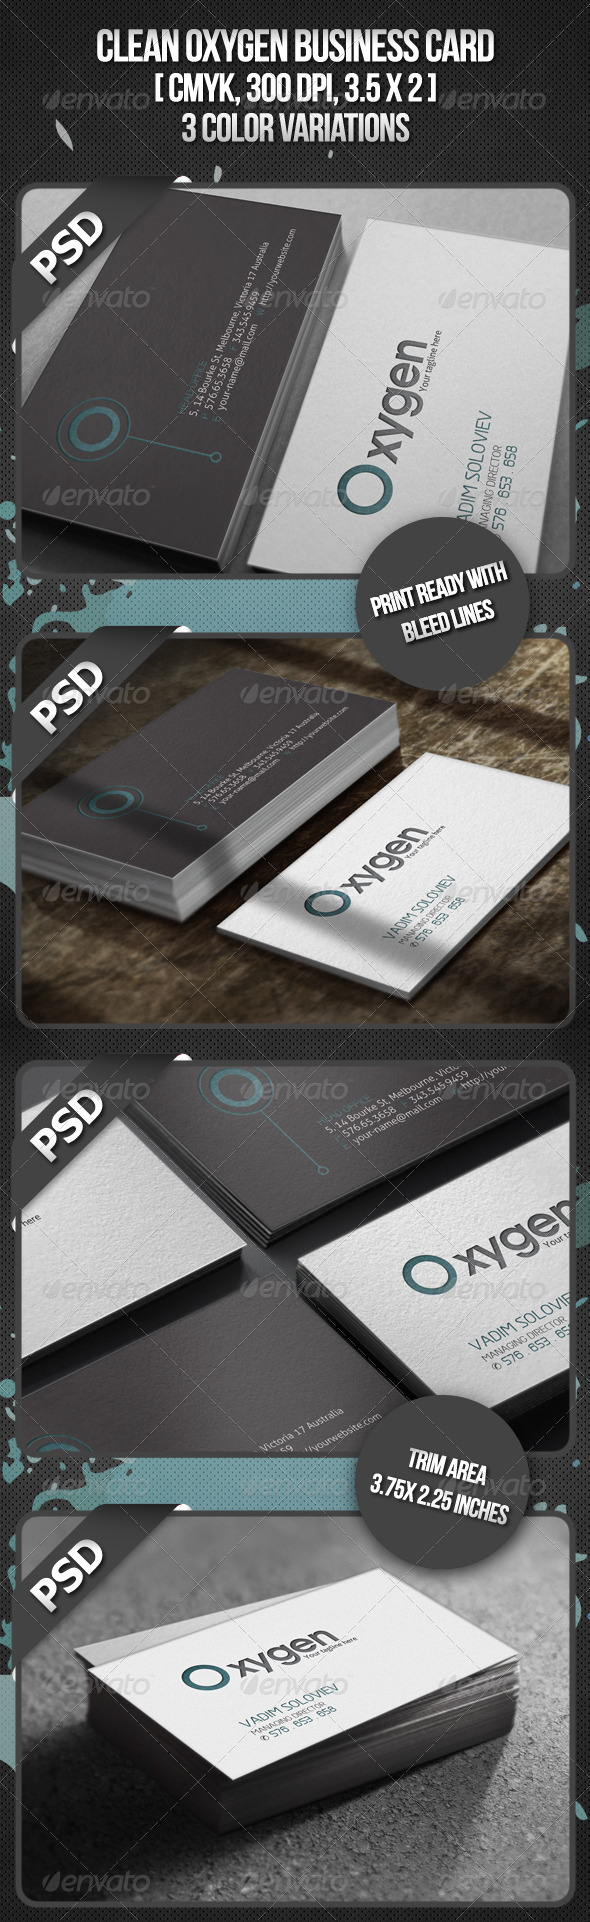 Clean Oxygen Business Card - Corporate Business Cards